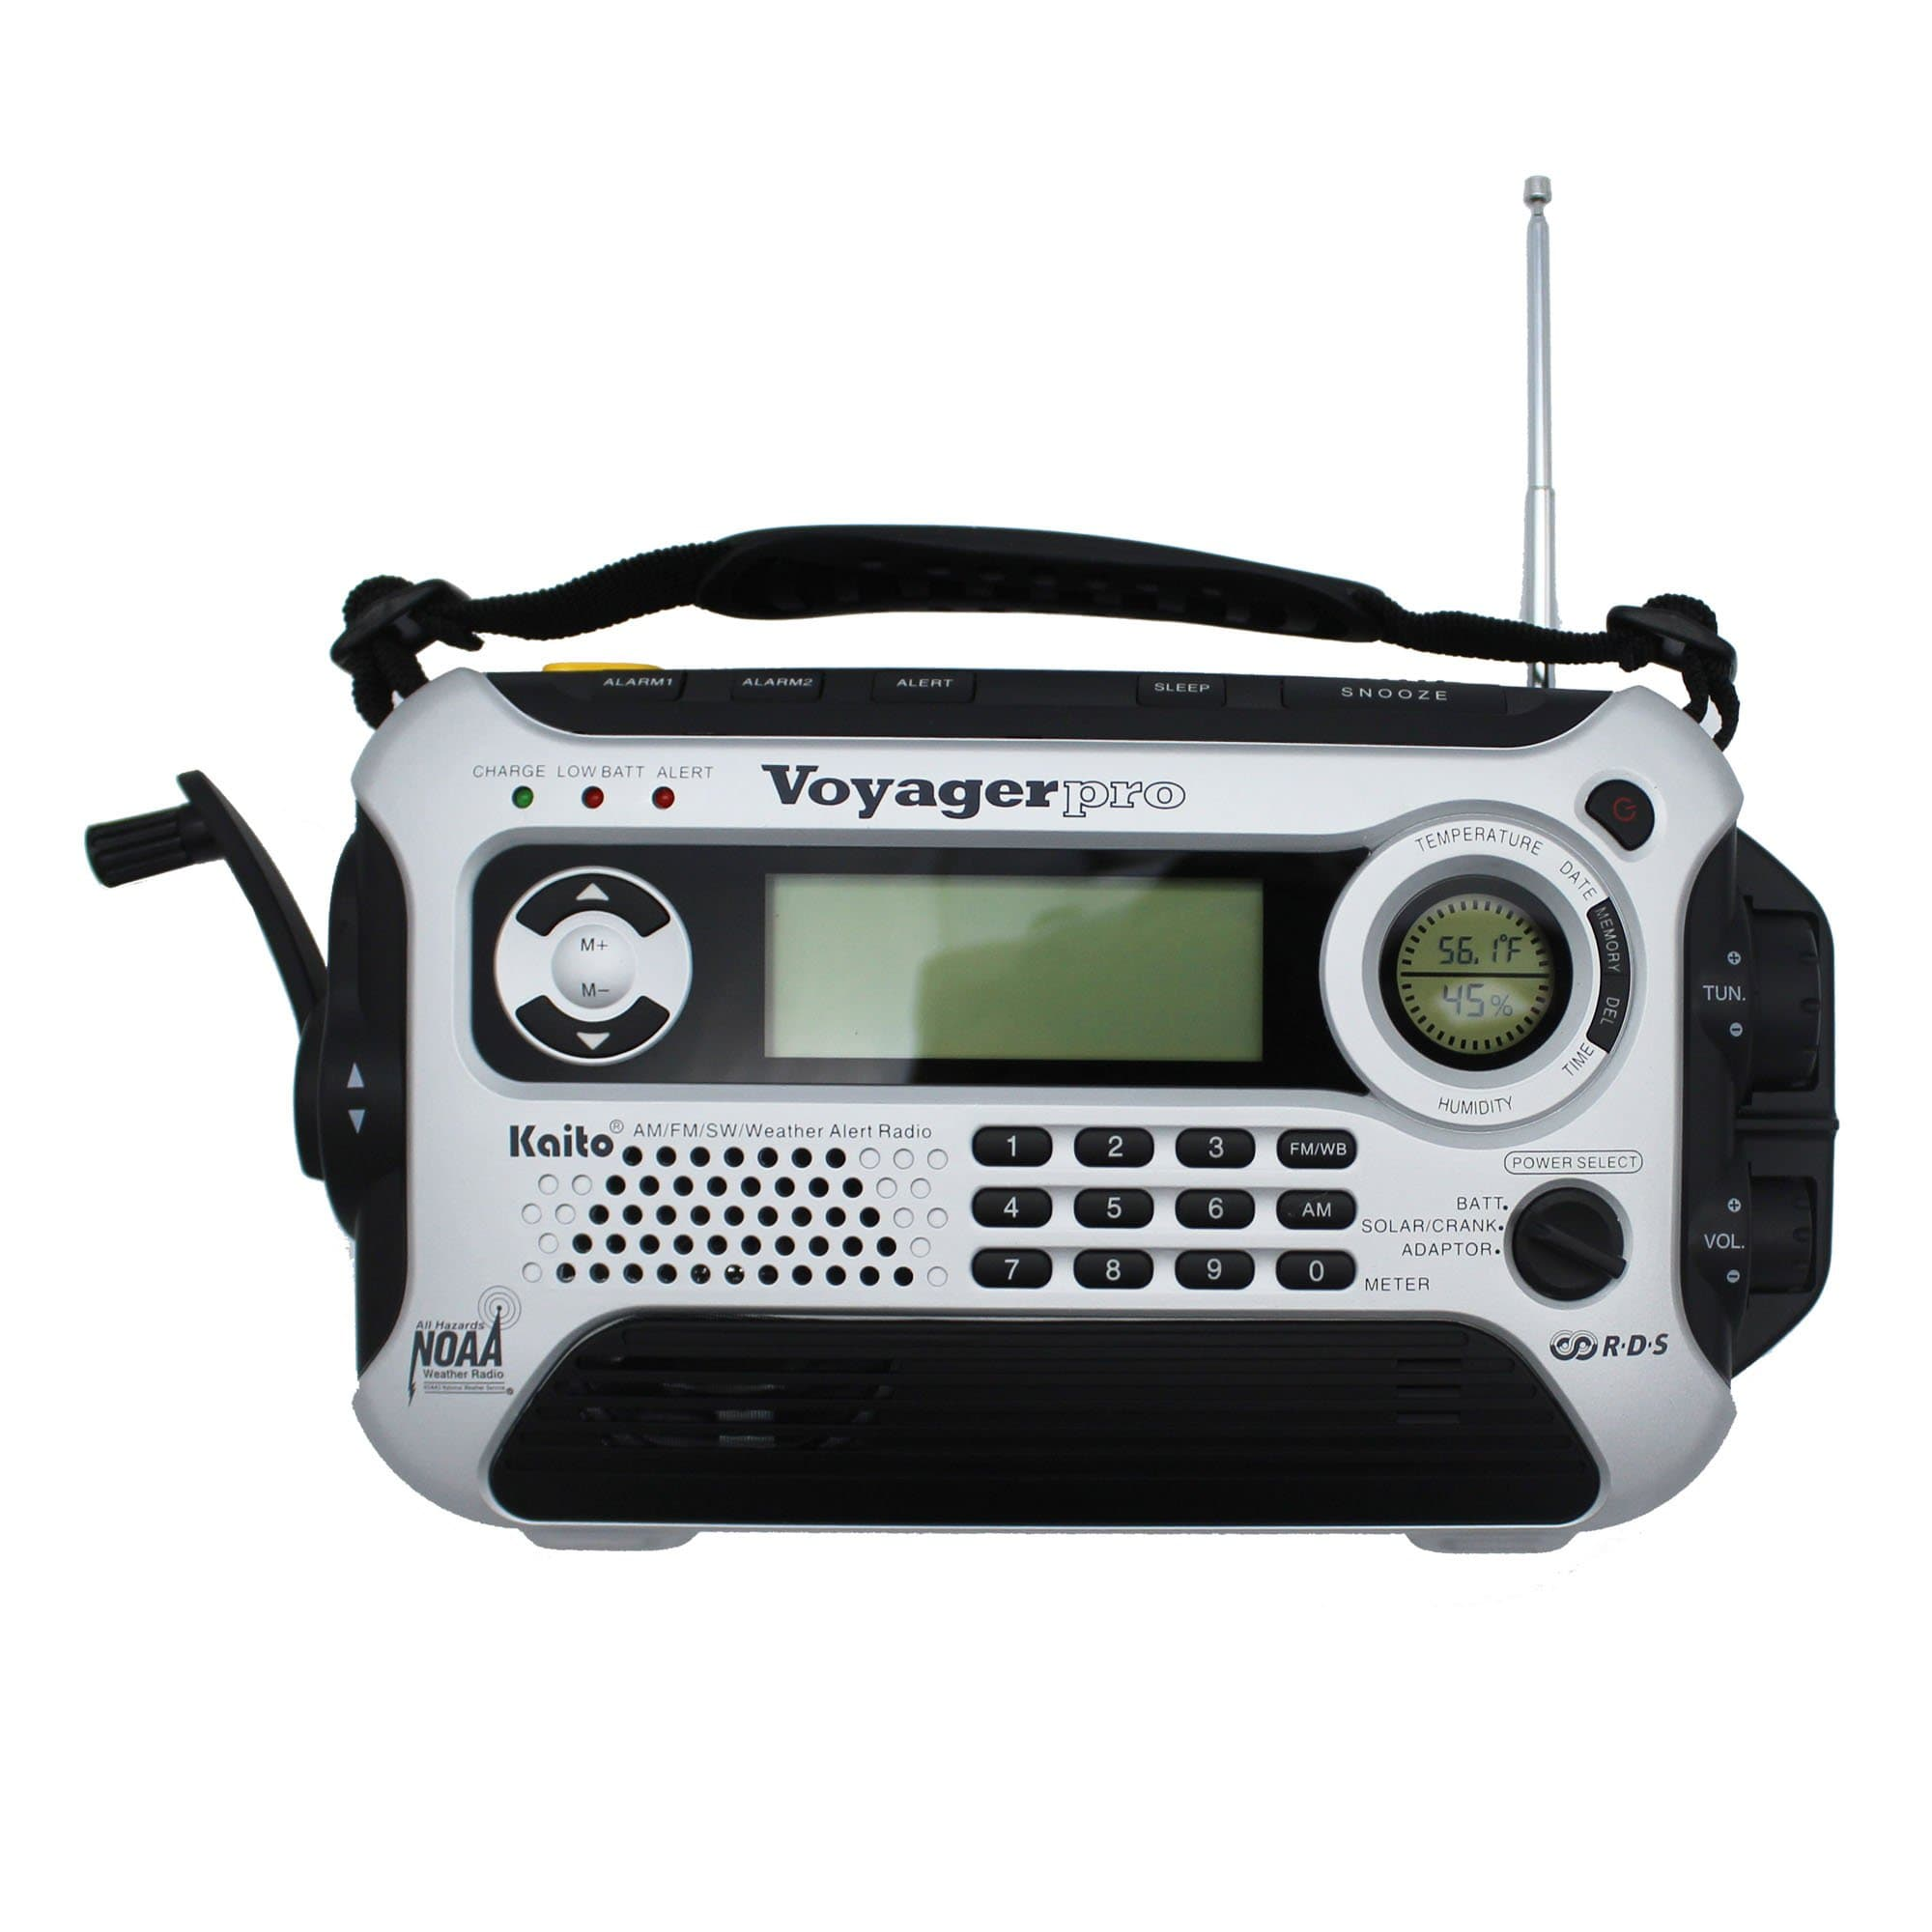 Kaito Voyager Pro KA600 Digital Solar/Dynamo AM/FM/LW/SW & NOAA Weather Emergency Radio with Alert & RDS